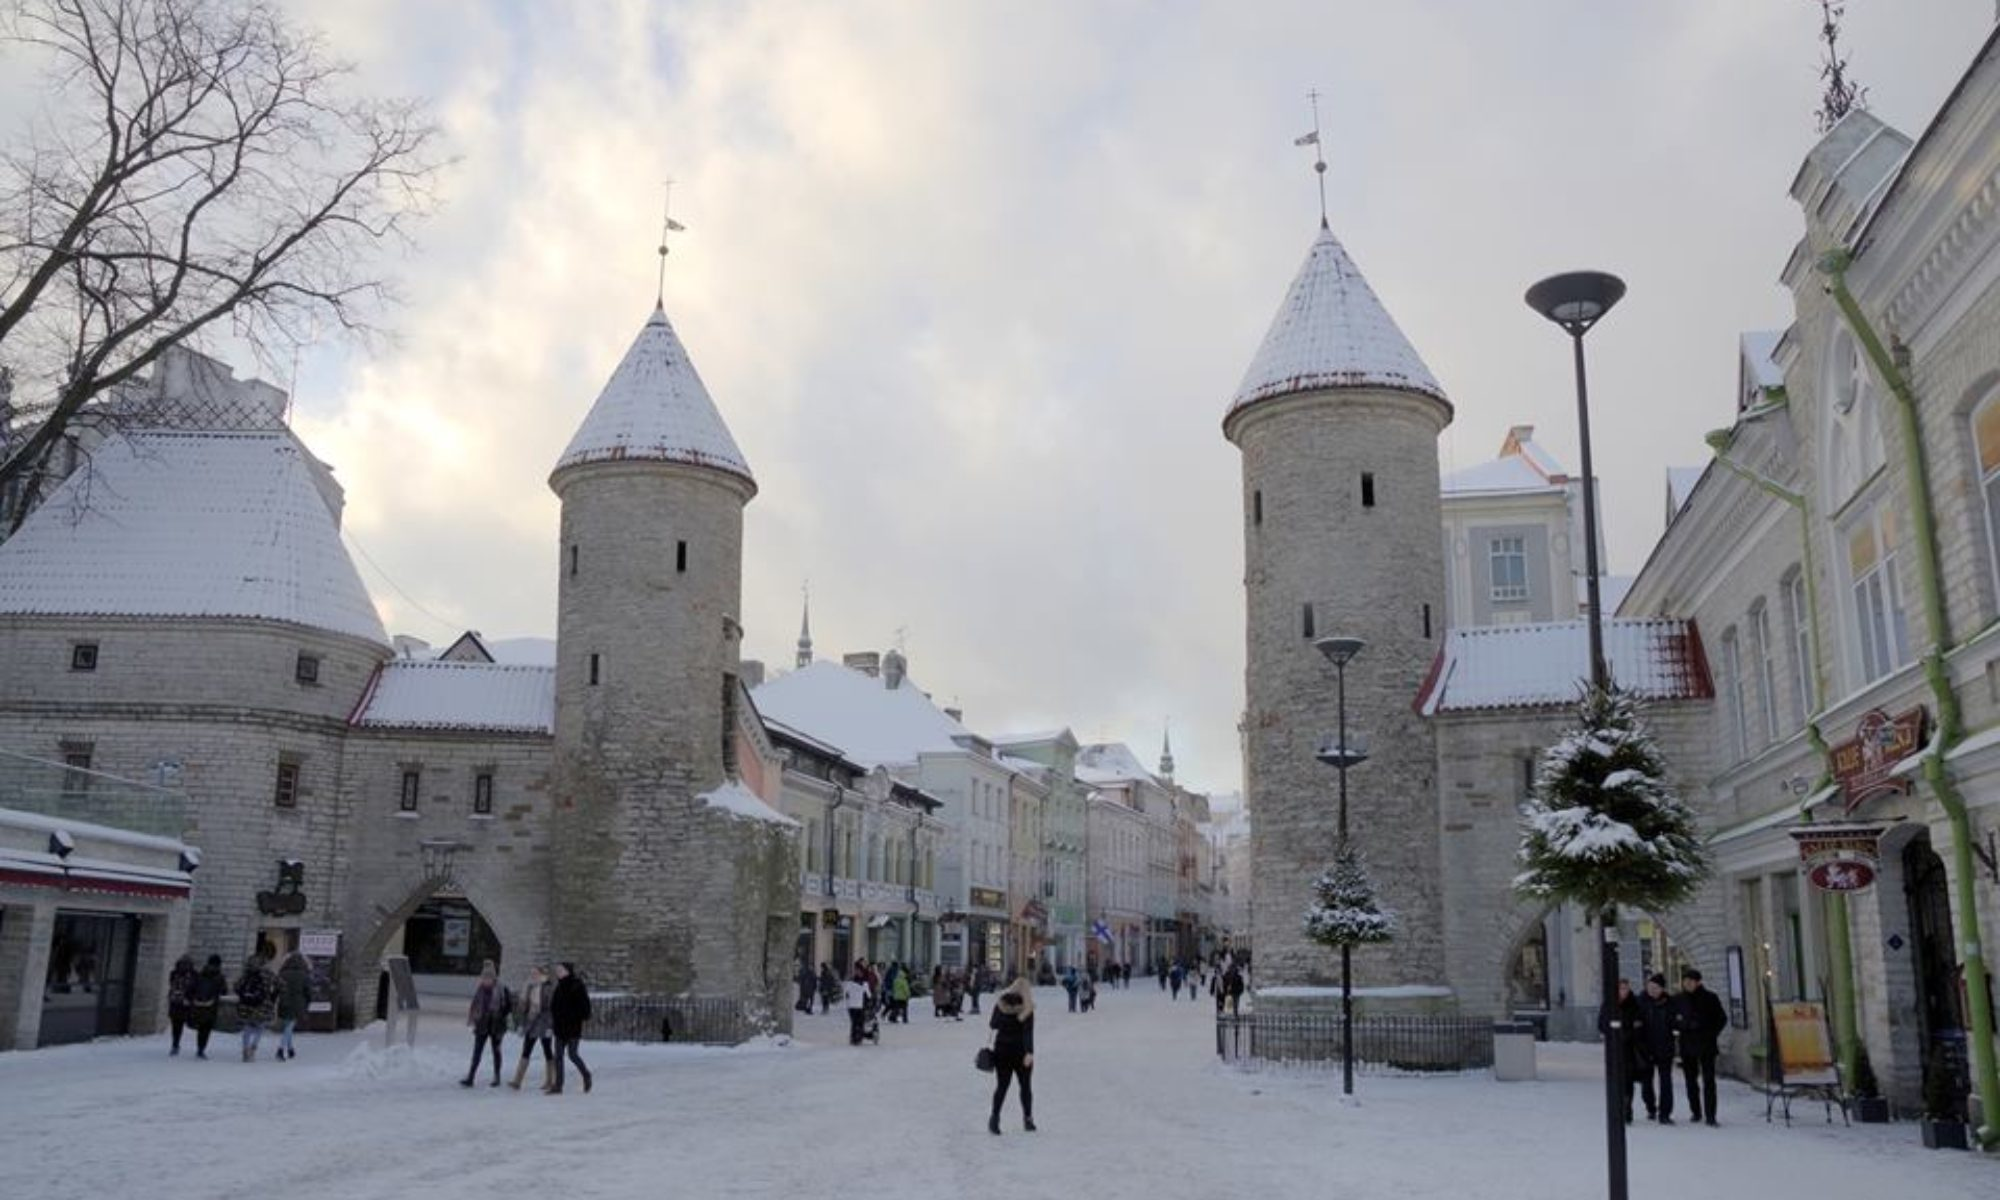 Estonia through the eyes of a Norwegian